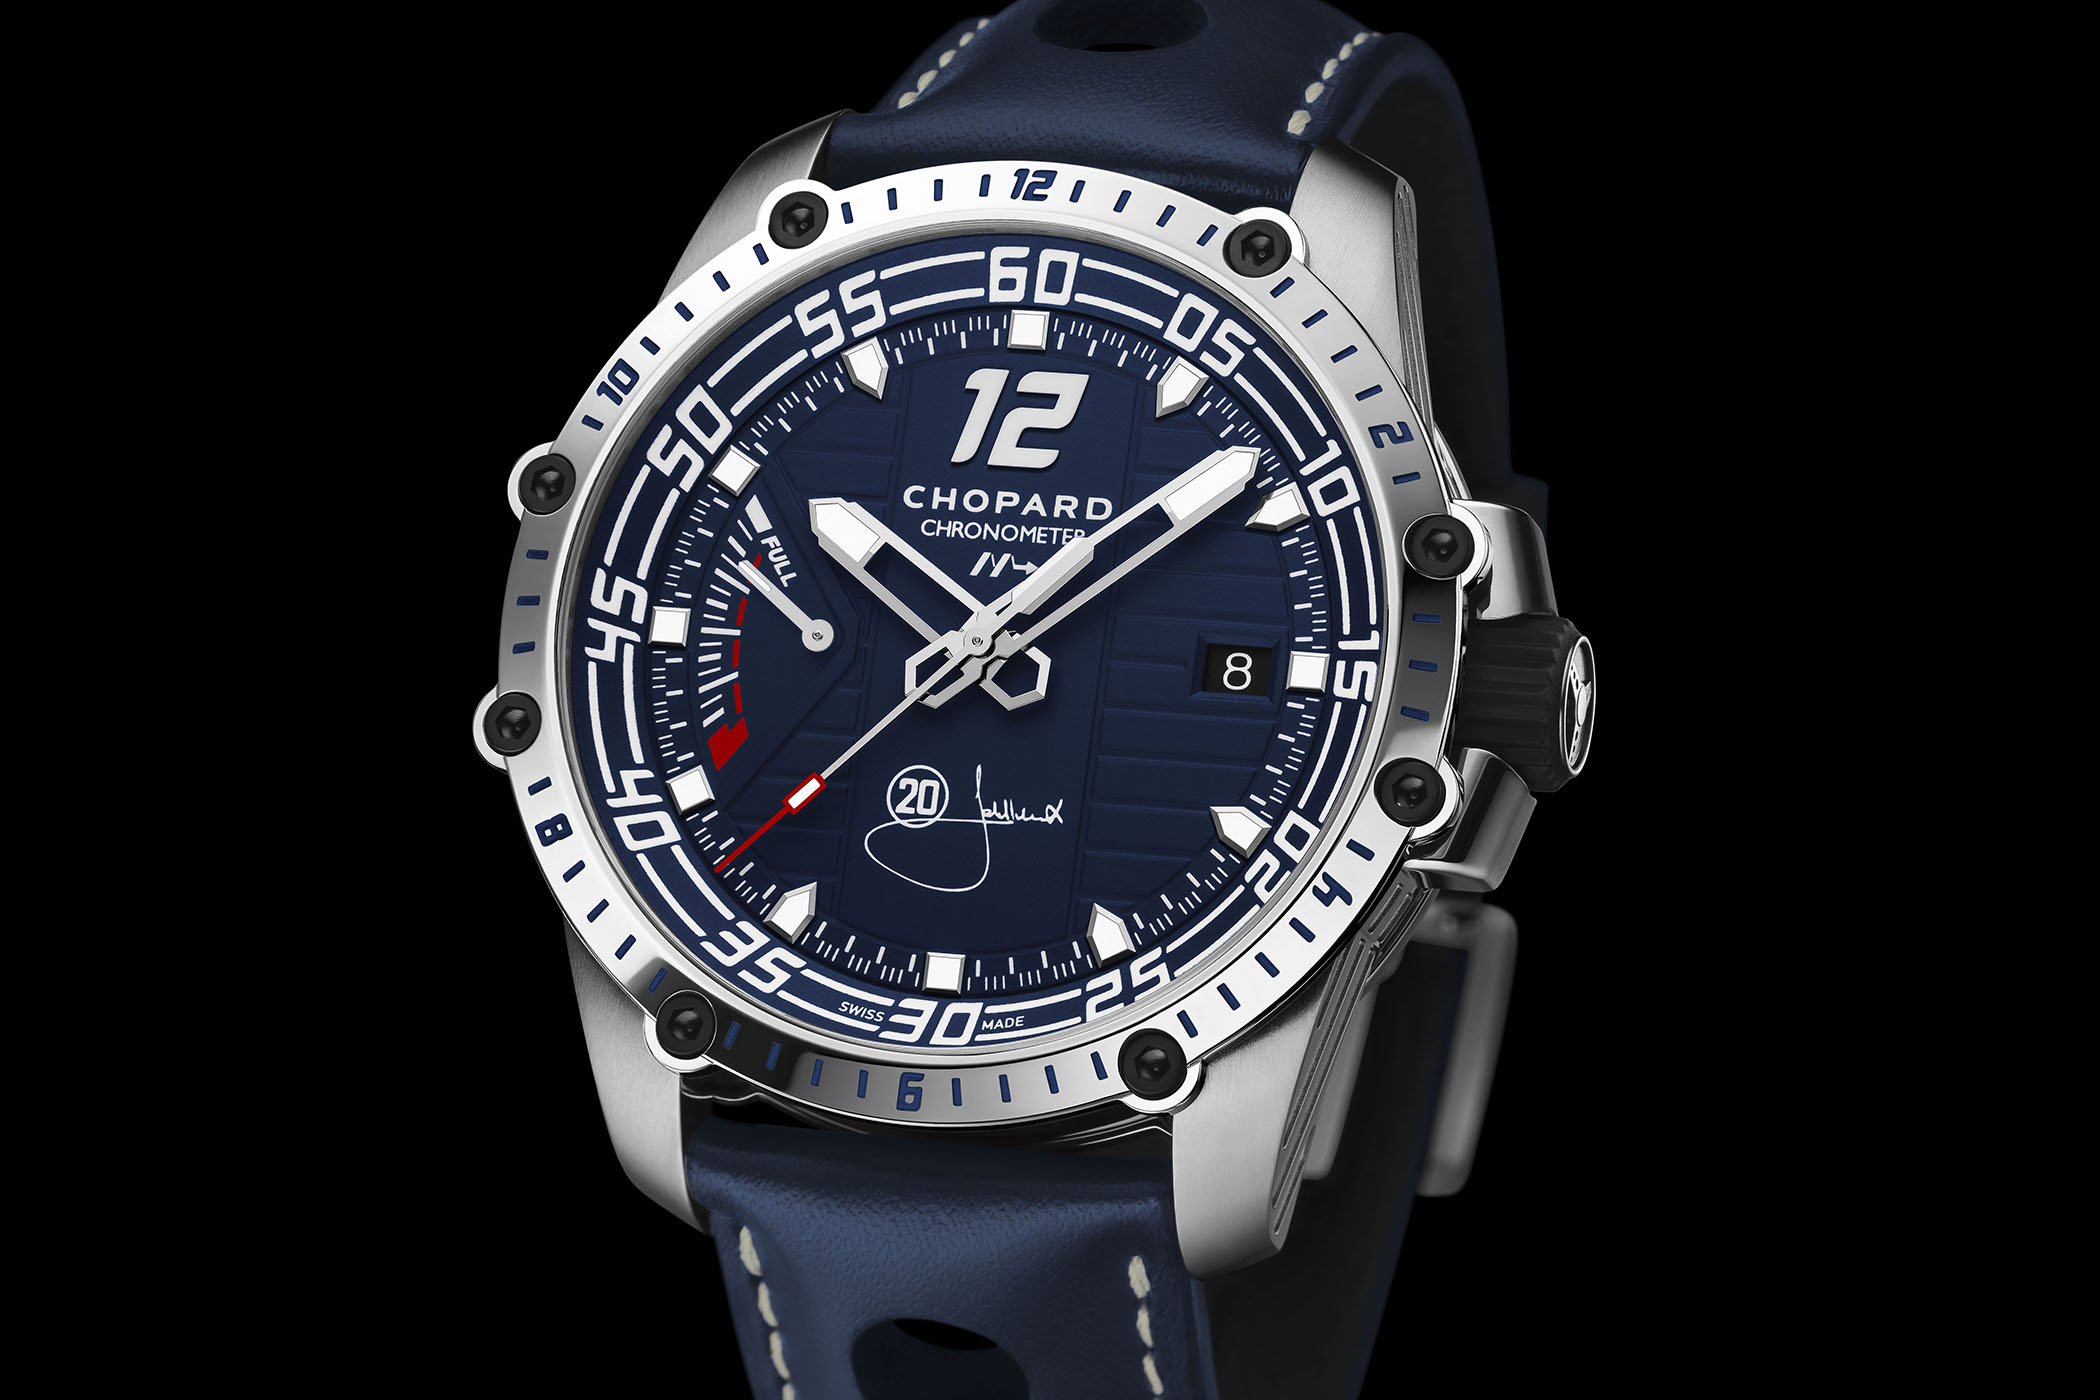 Chopard-Superfast-8-Hz-Power-Control-Porsche-919-Only-Watch-2017-2